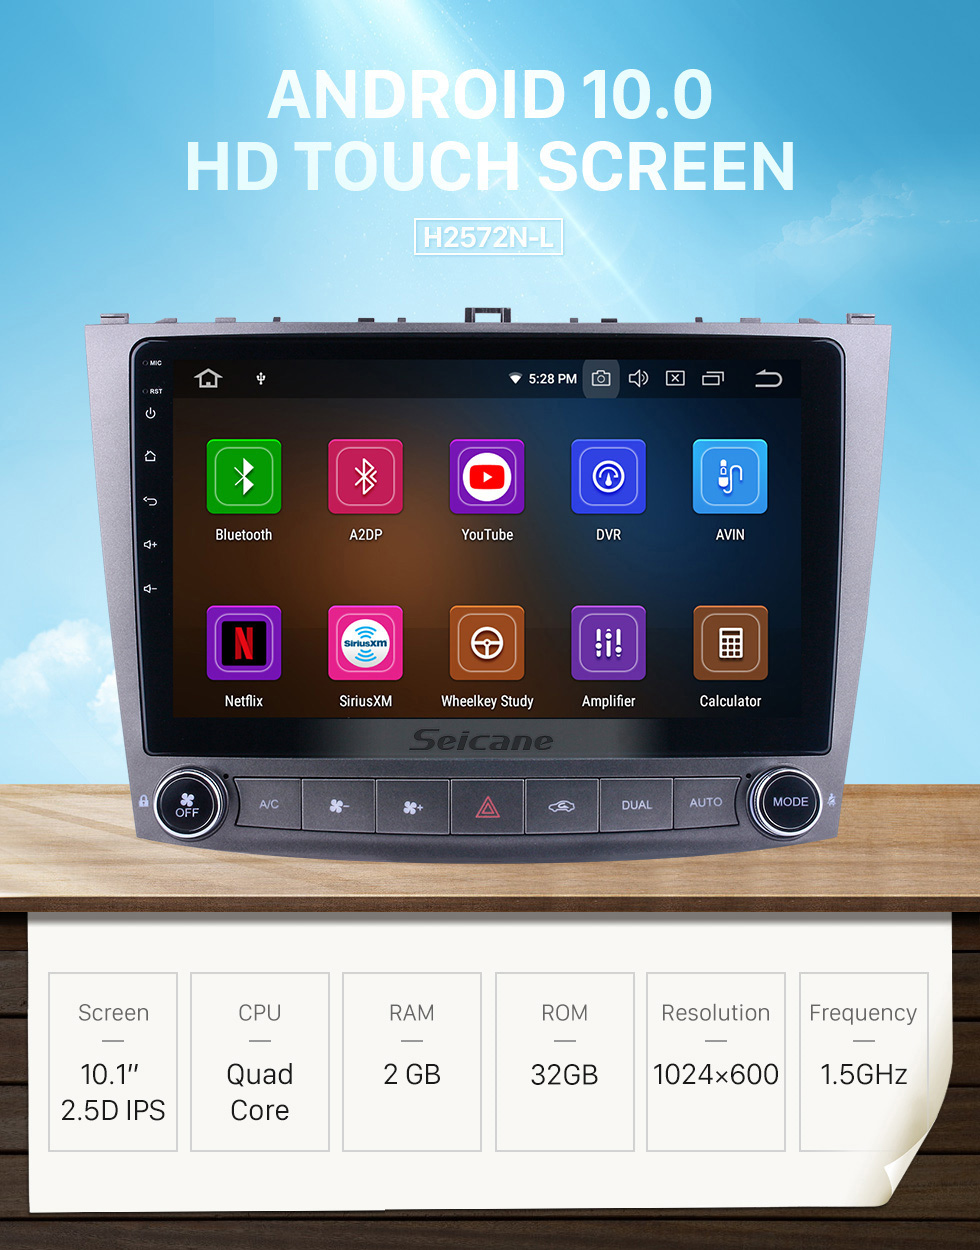 Seicane 10.1 inch For Lexus IS250 Radio Android 10.0 GPS Navigation System with HD Touchscreen Bluetooth Carplay support Backup camera